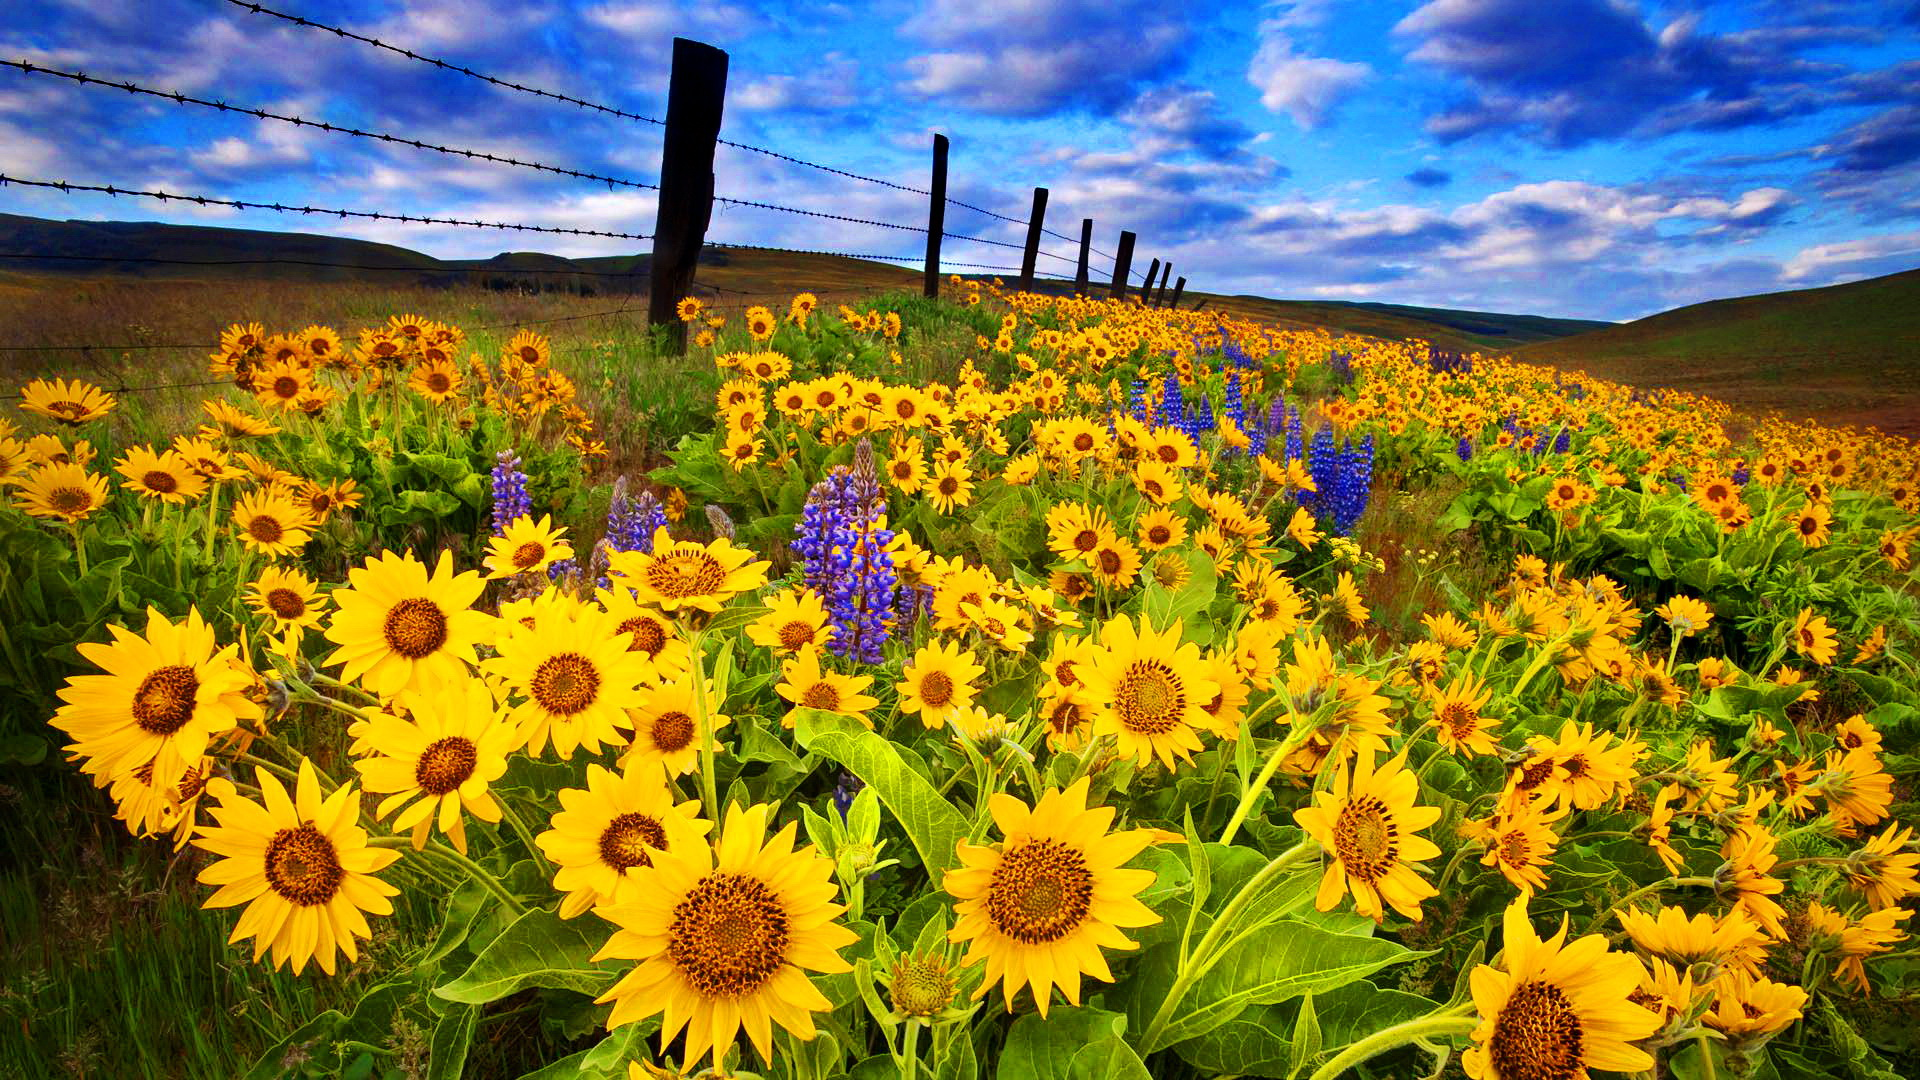 Sunflowers Growing On The Side Of Road Full HD Wallpaper And